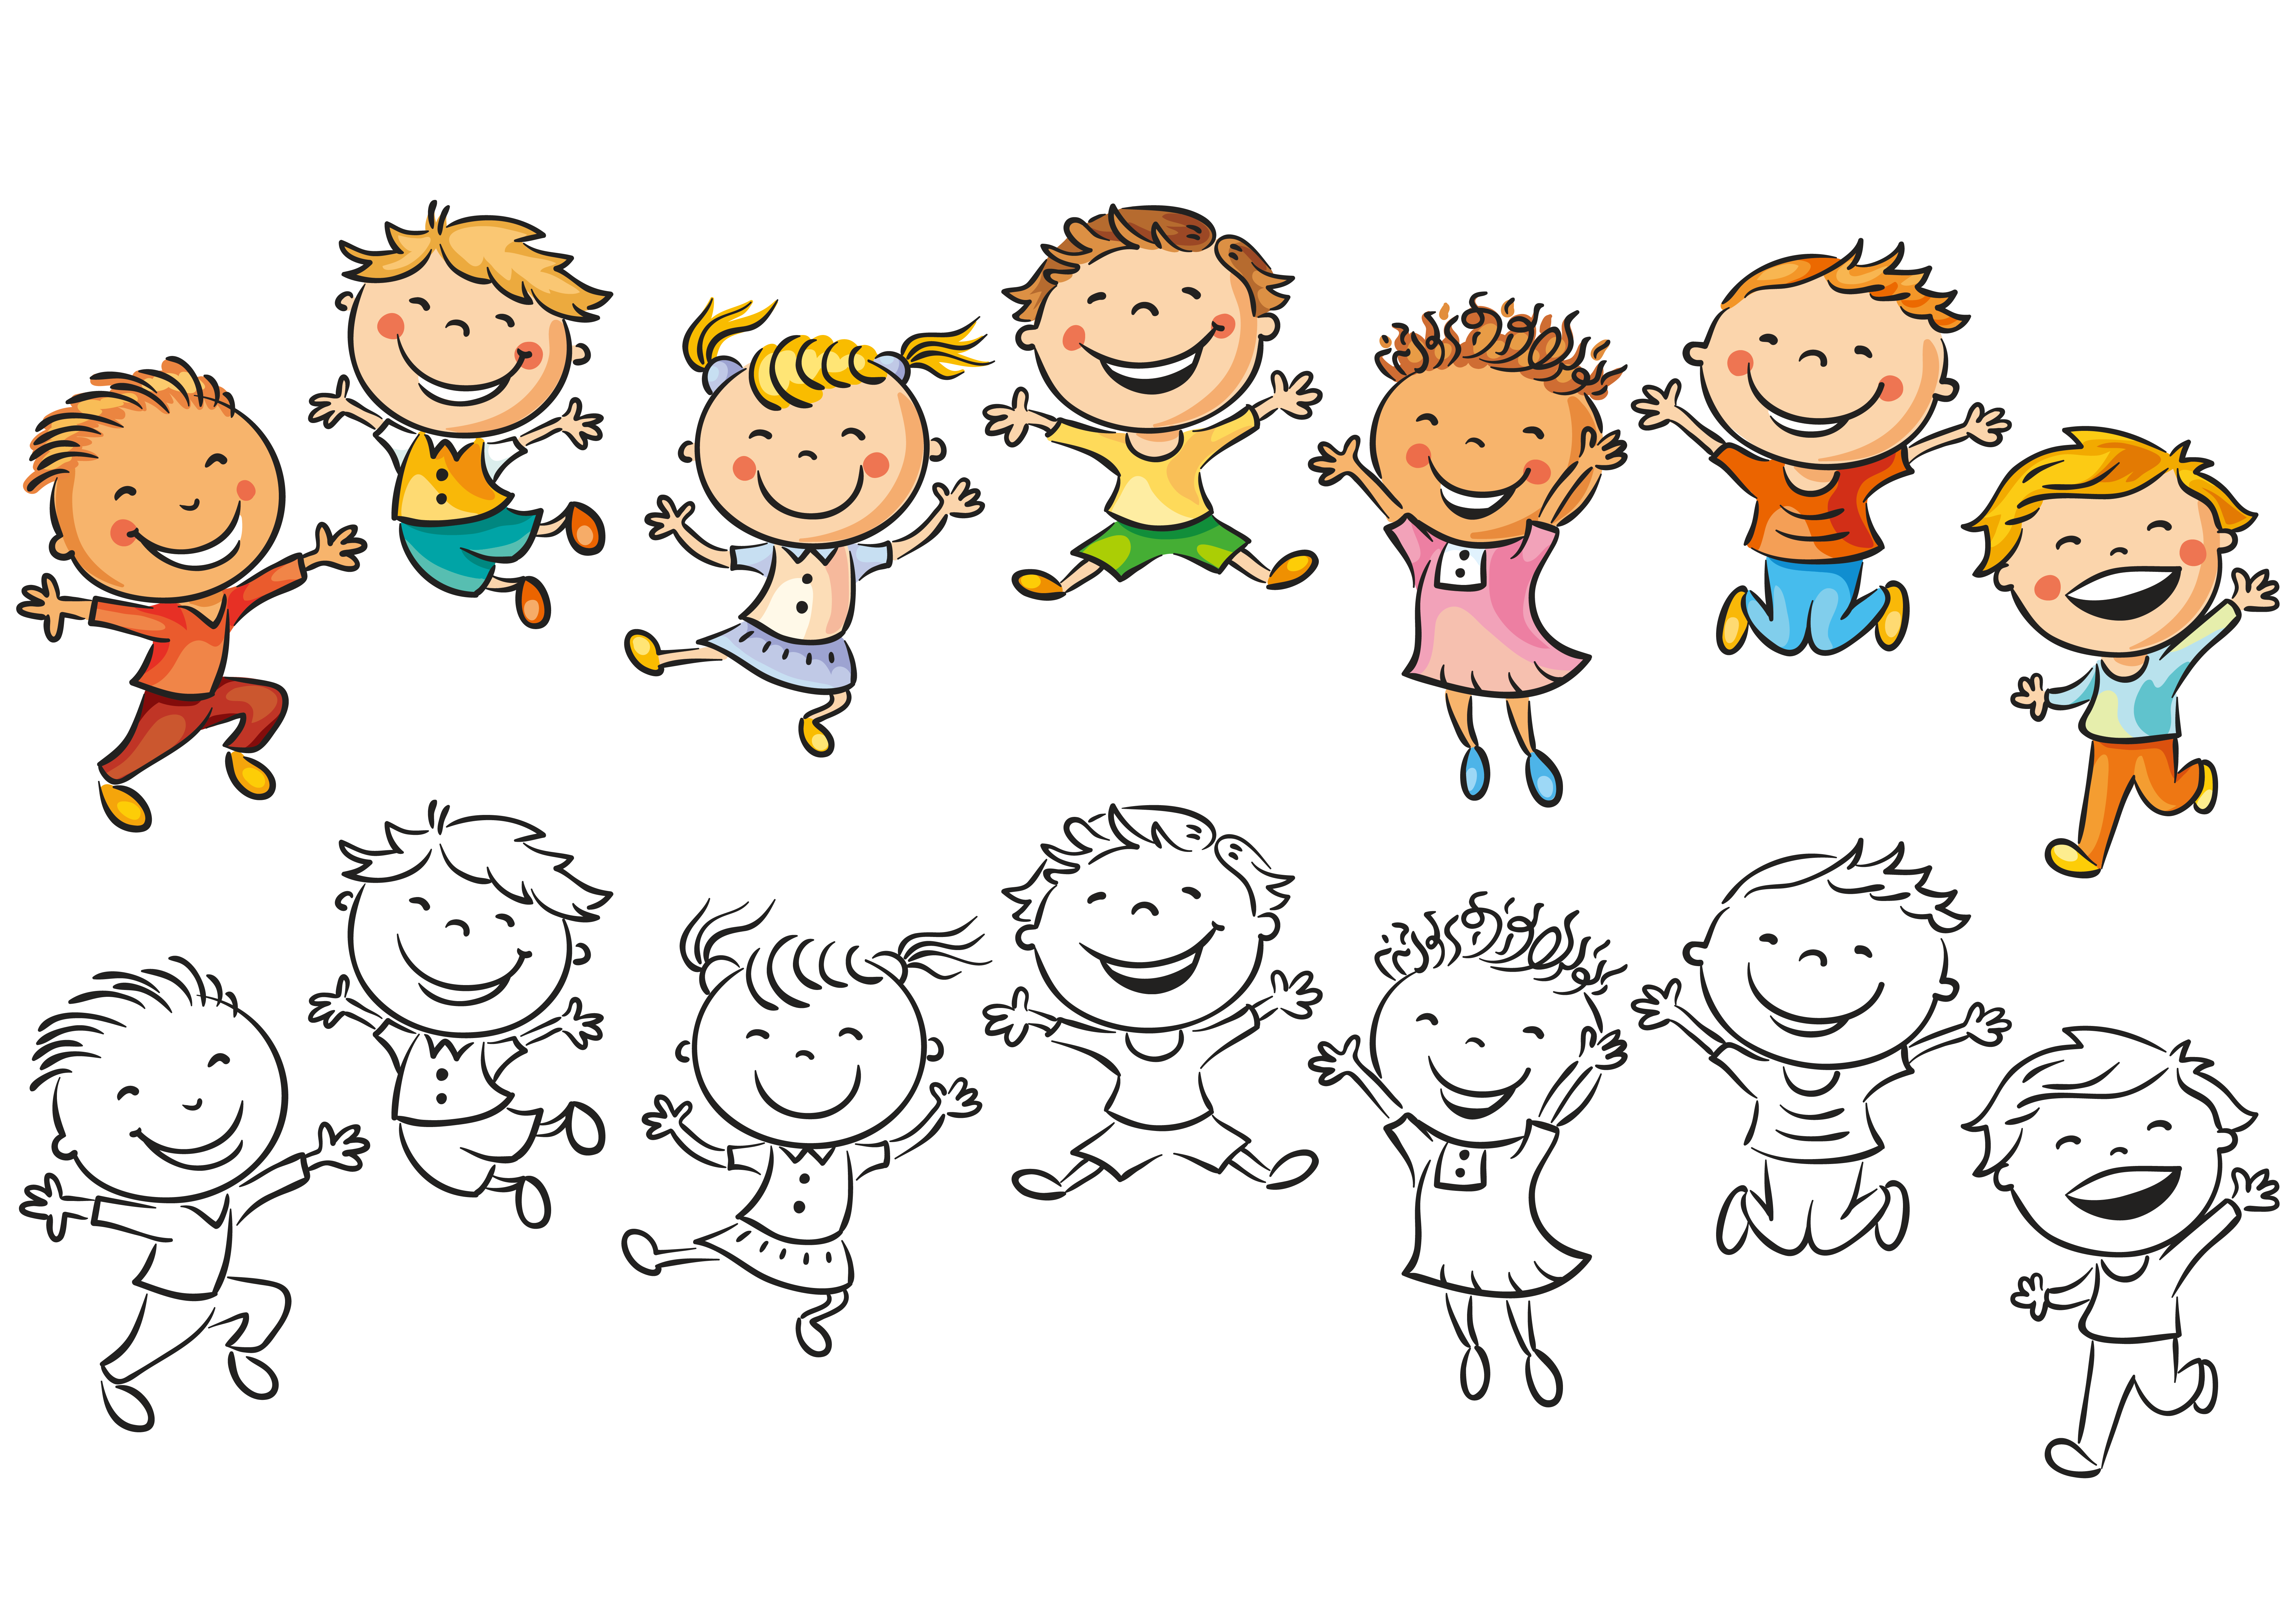 jpg freeuse library draw vector children's #95926430